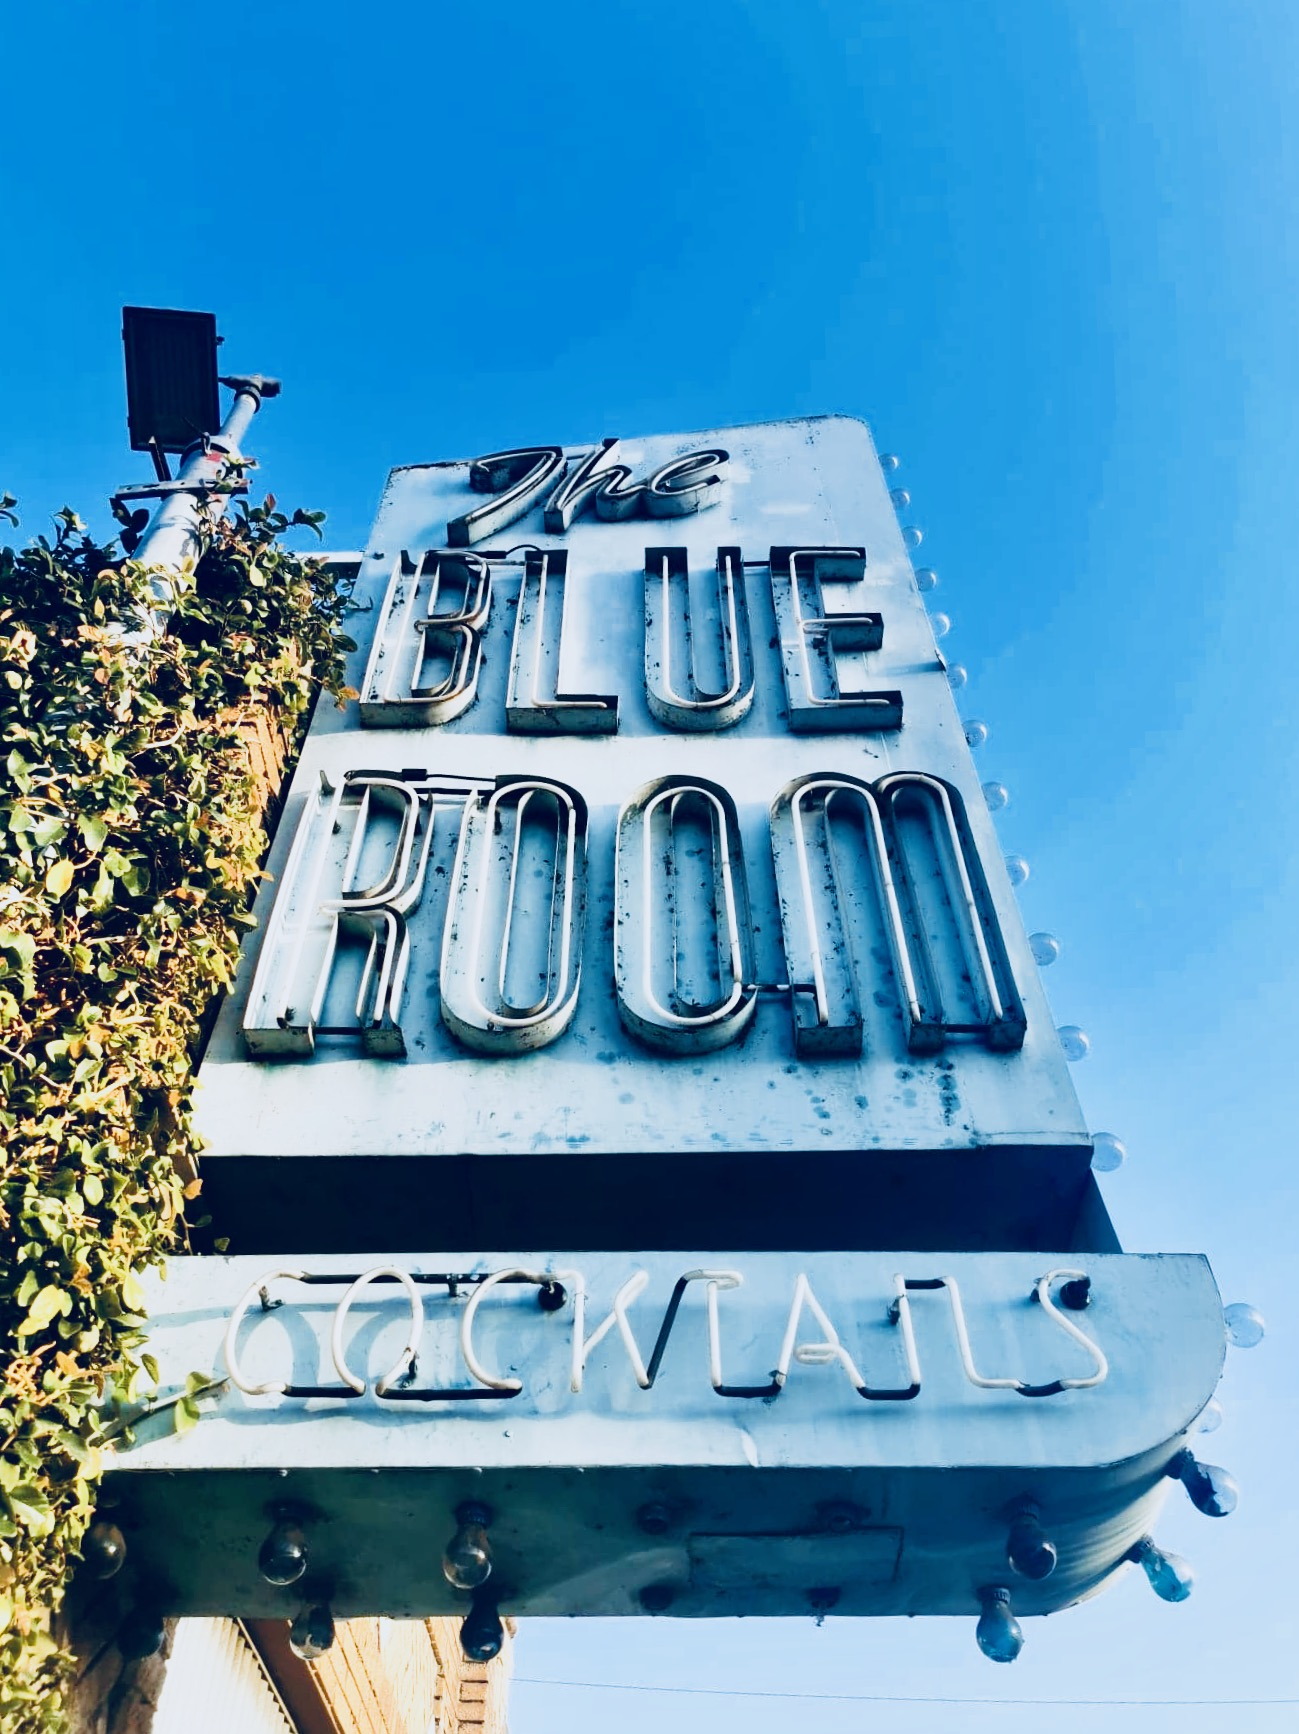 Outside The Blue Room, Burbank.